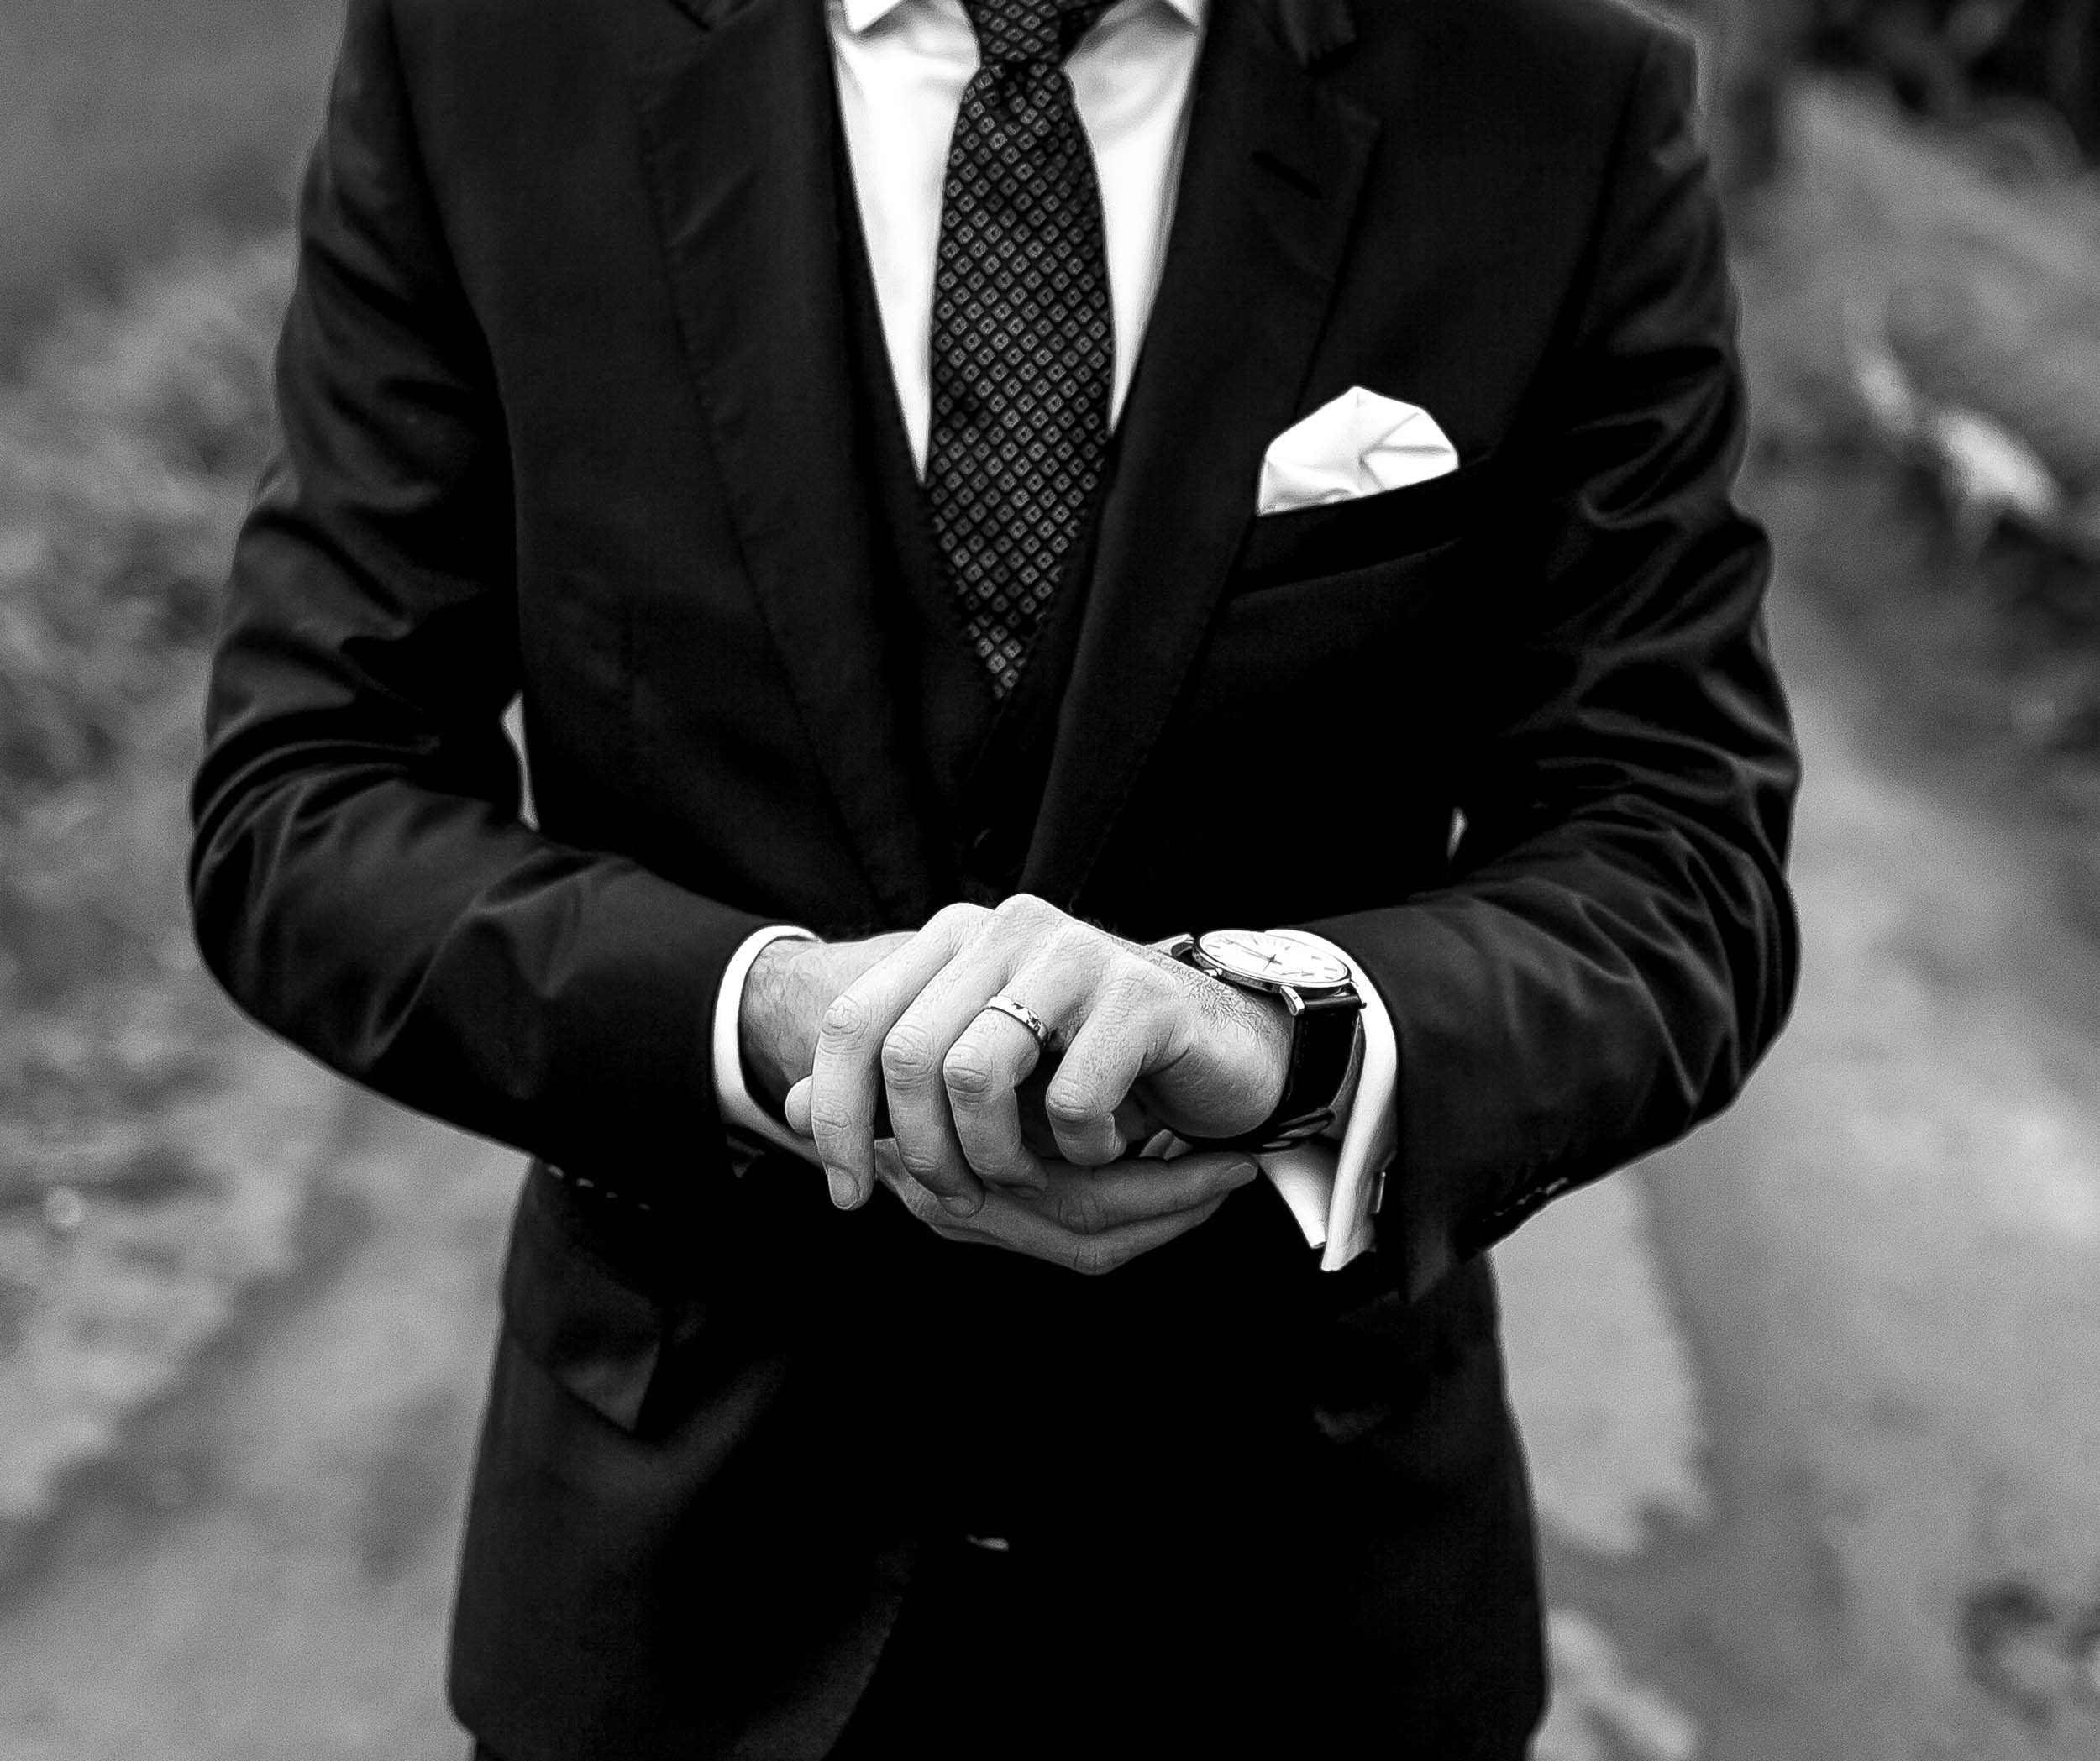 THE GROOM - Brendan wore a classic black suit with patterned tie.